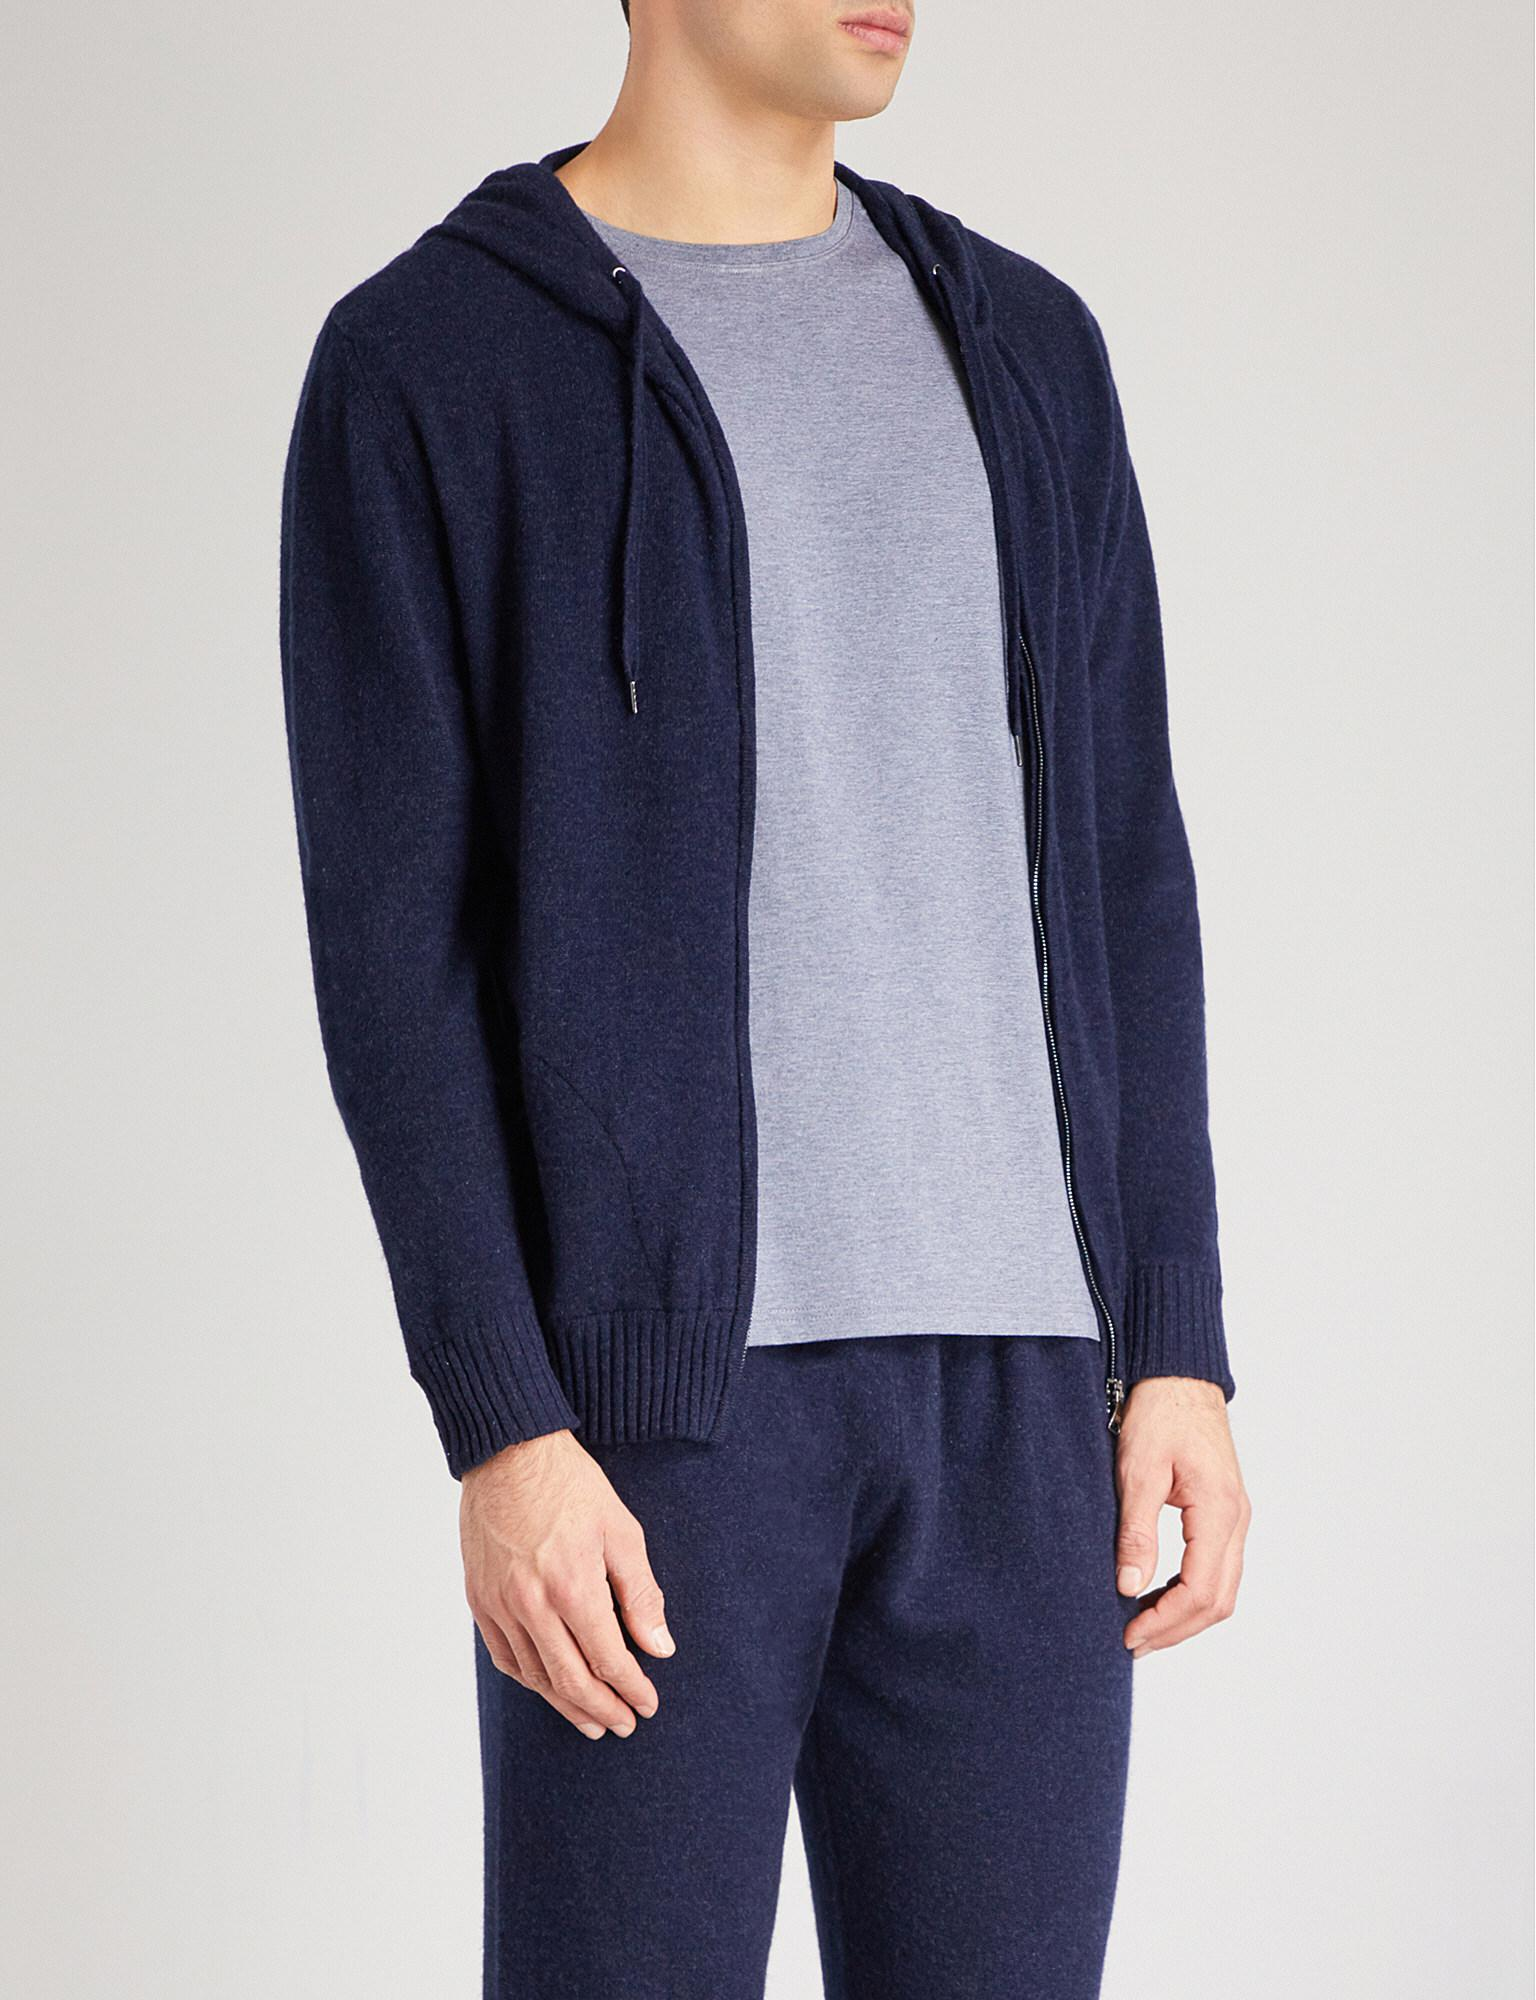 Derek Rose. Men's Blue Finley Cashmere Hoody